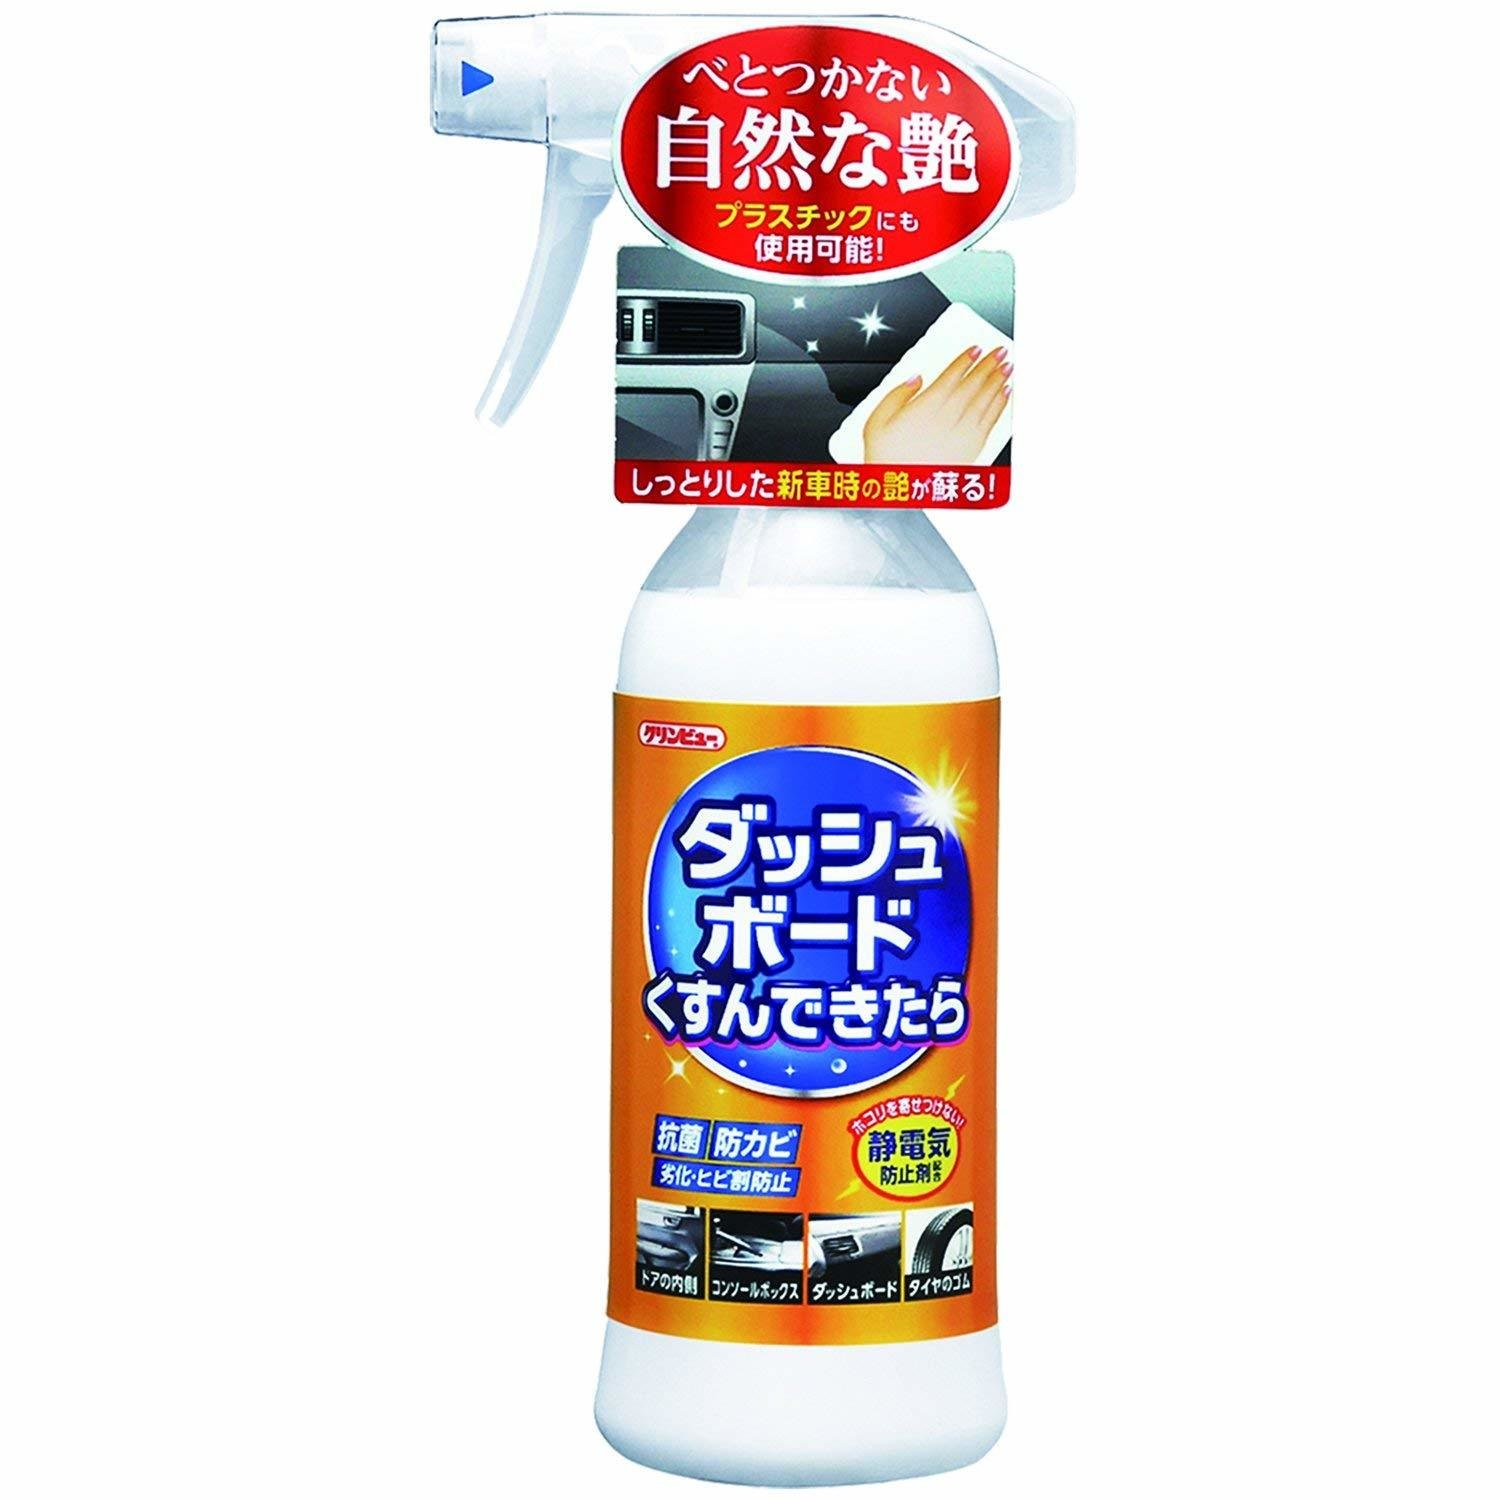 Ichinen Chemicals Cleanview Dashboard Cleaner IIS015